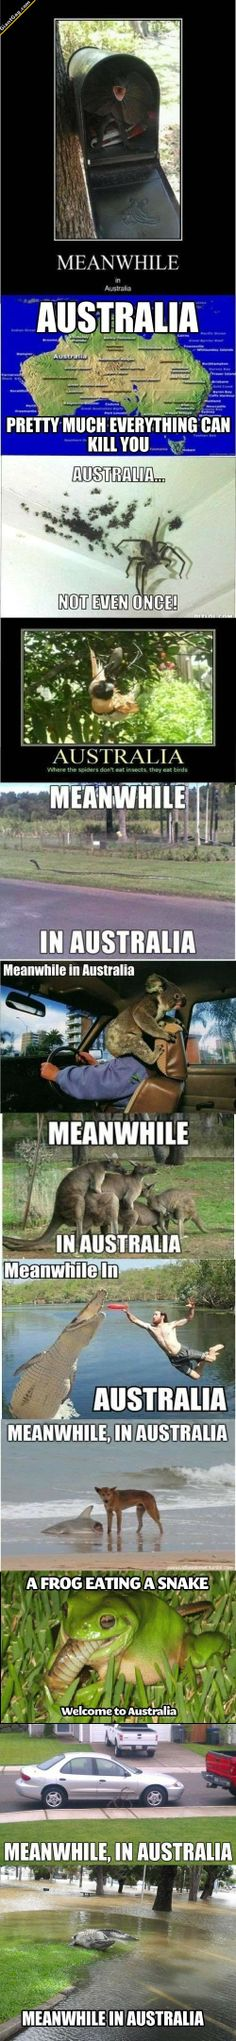 Meanwhile In Australia Collection | Click the link to view full image and description : )